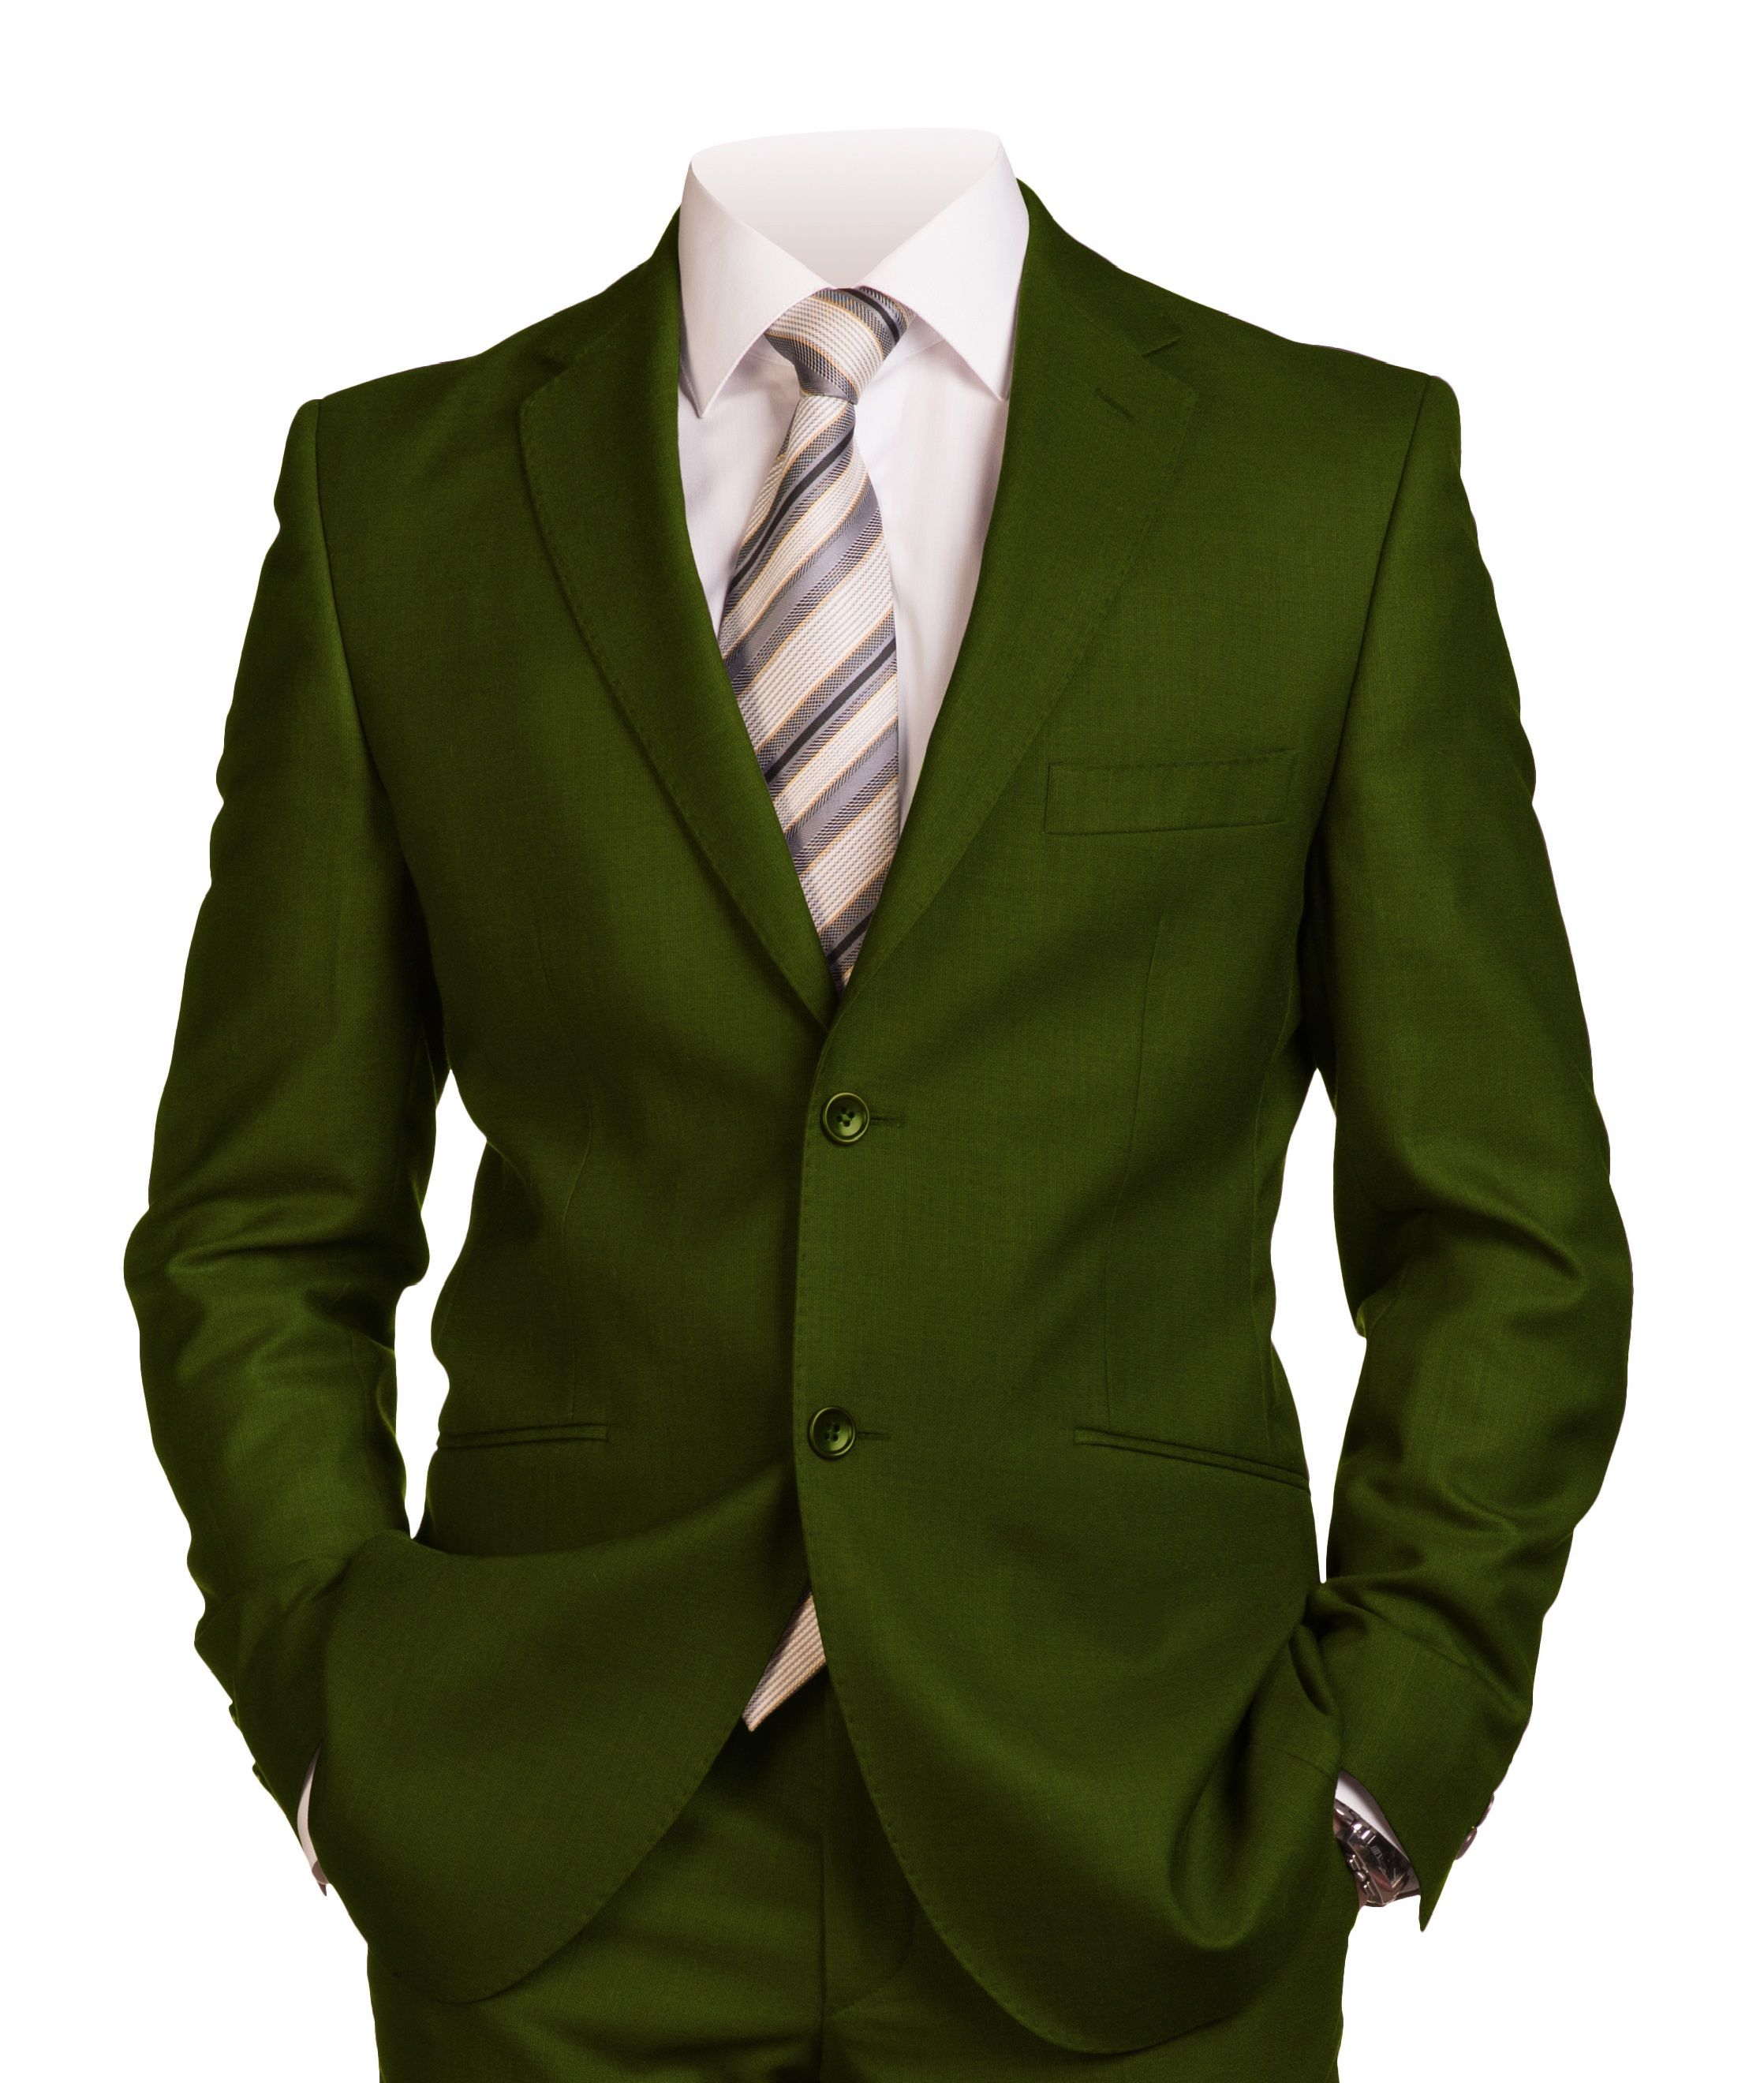 Men's Italian-Style Single-Breasted Suit - Olive *BOGO FREE Sale*